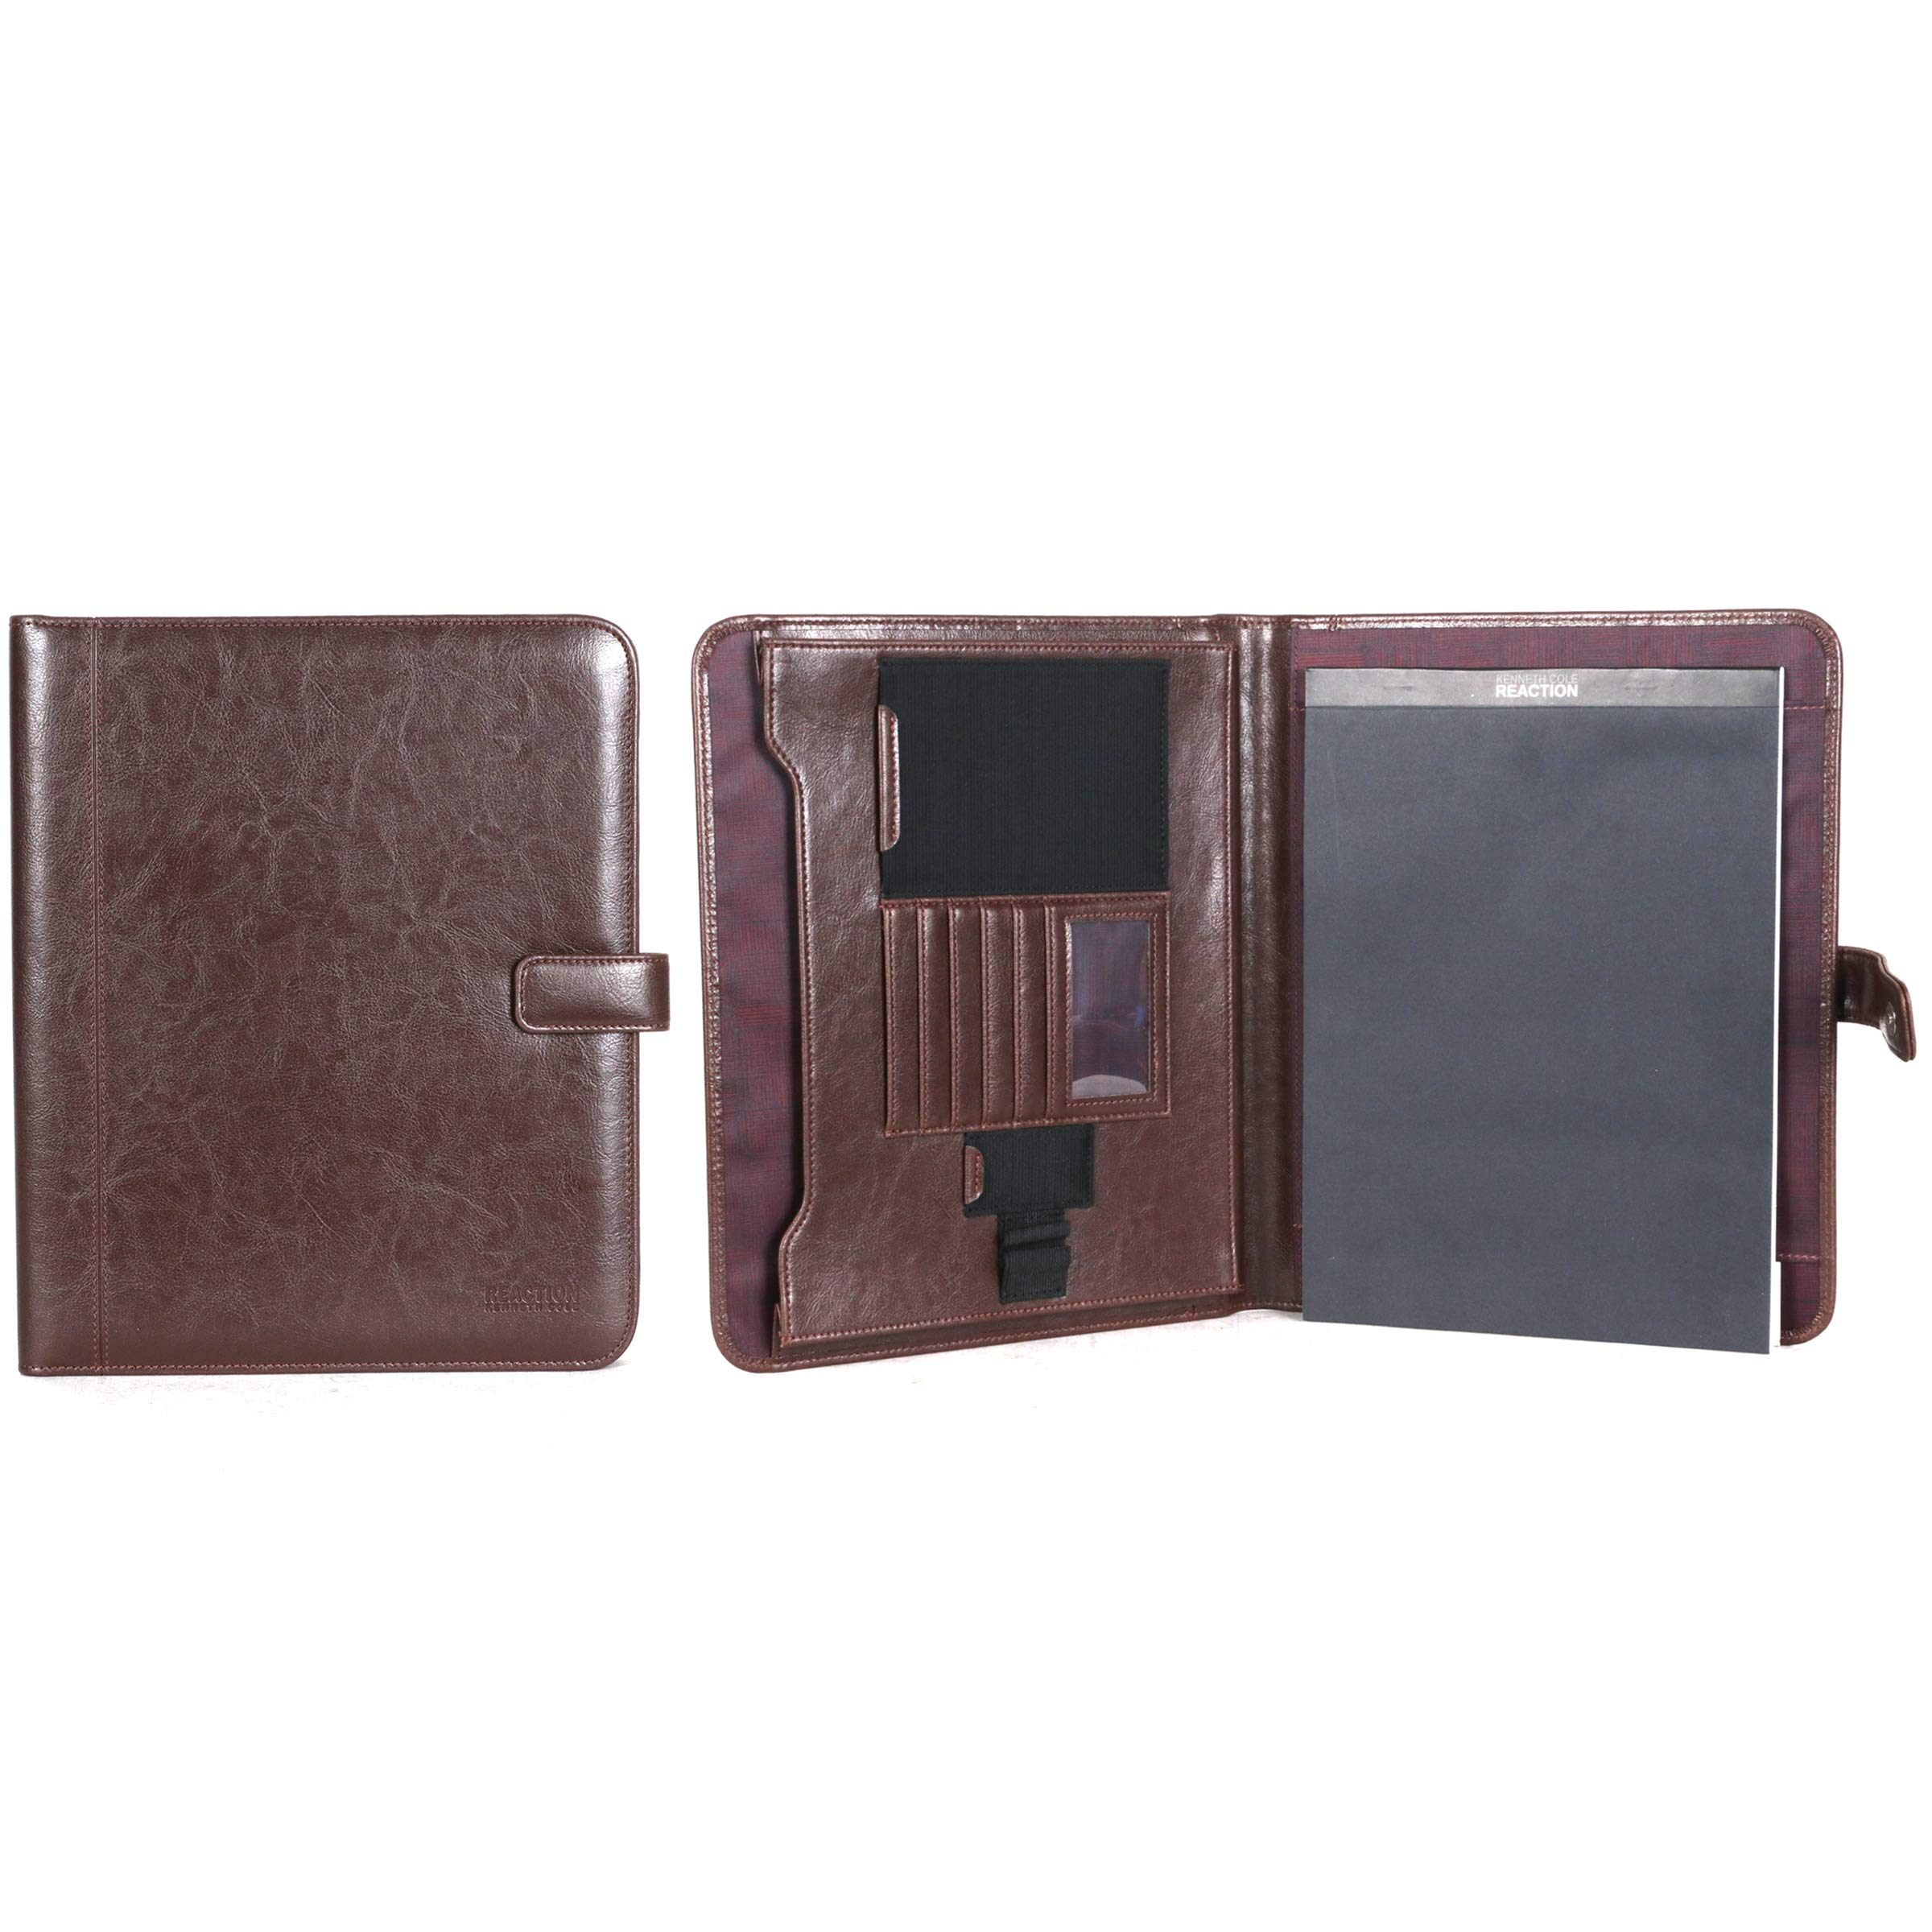 Kenneth Cole Reaction Faux Leather Standard Bifold Writing Pad with Business Organizer, Brown